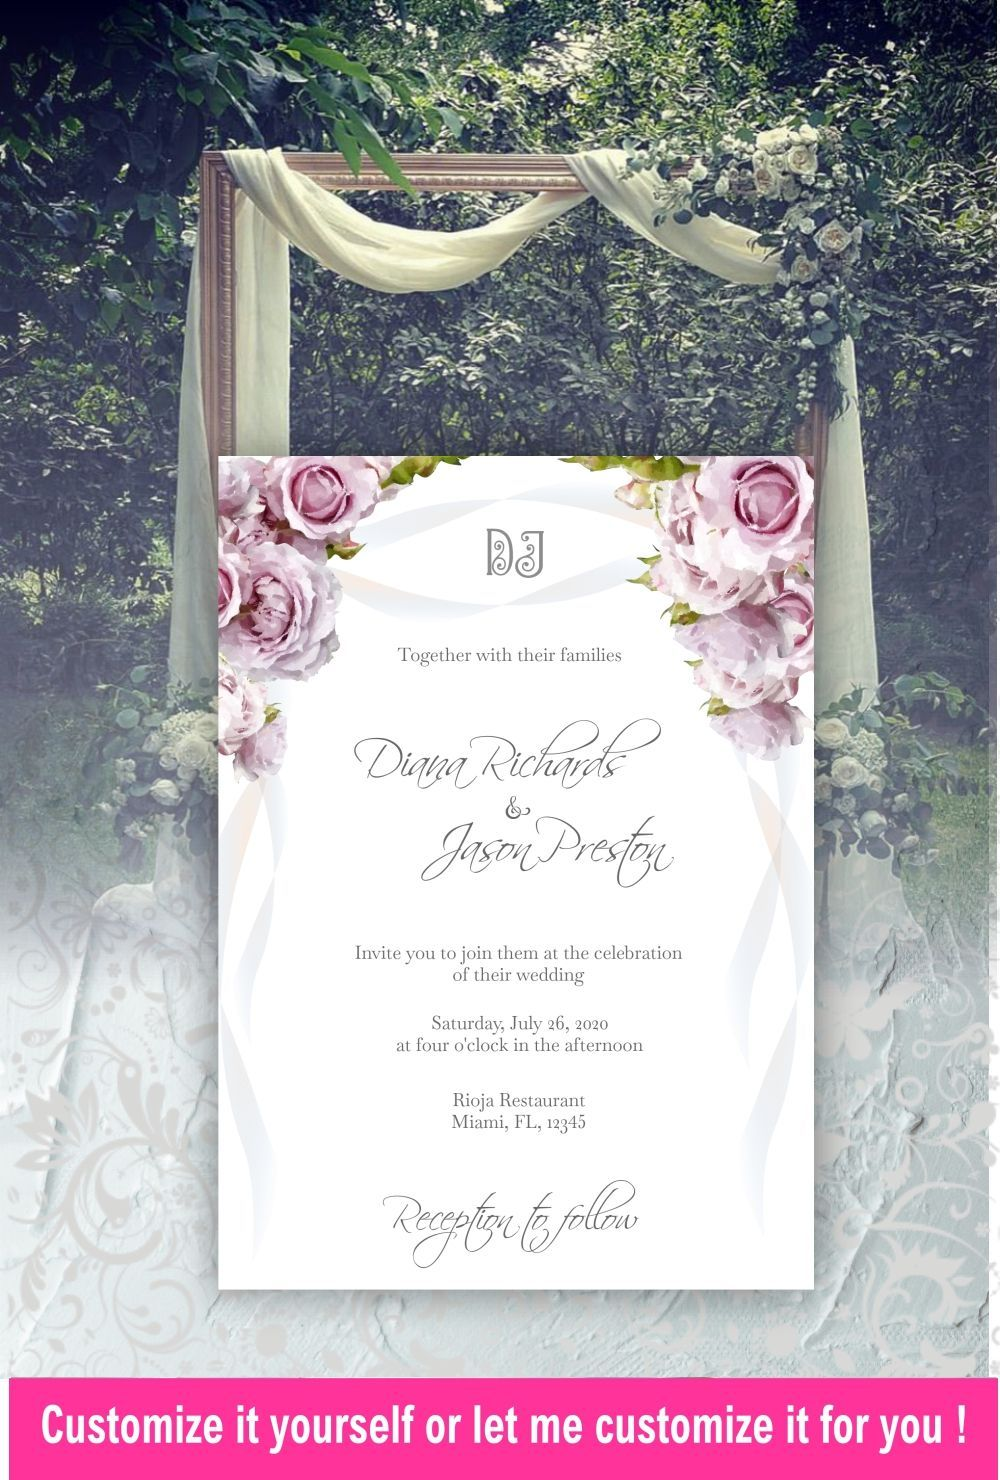 Mauve wedding invitation template wedding invitation suite rose pink lilac wedding invitation belly band wedding RSVP with menu YDe4